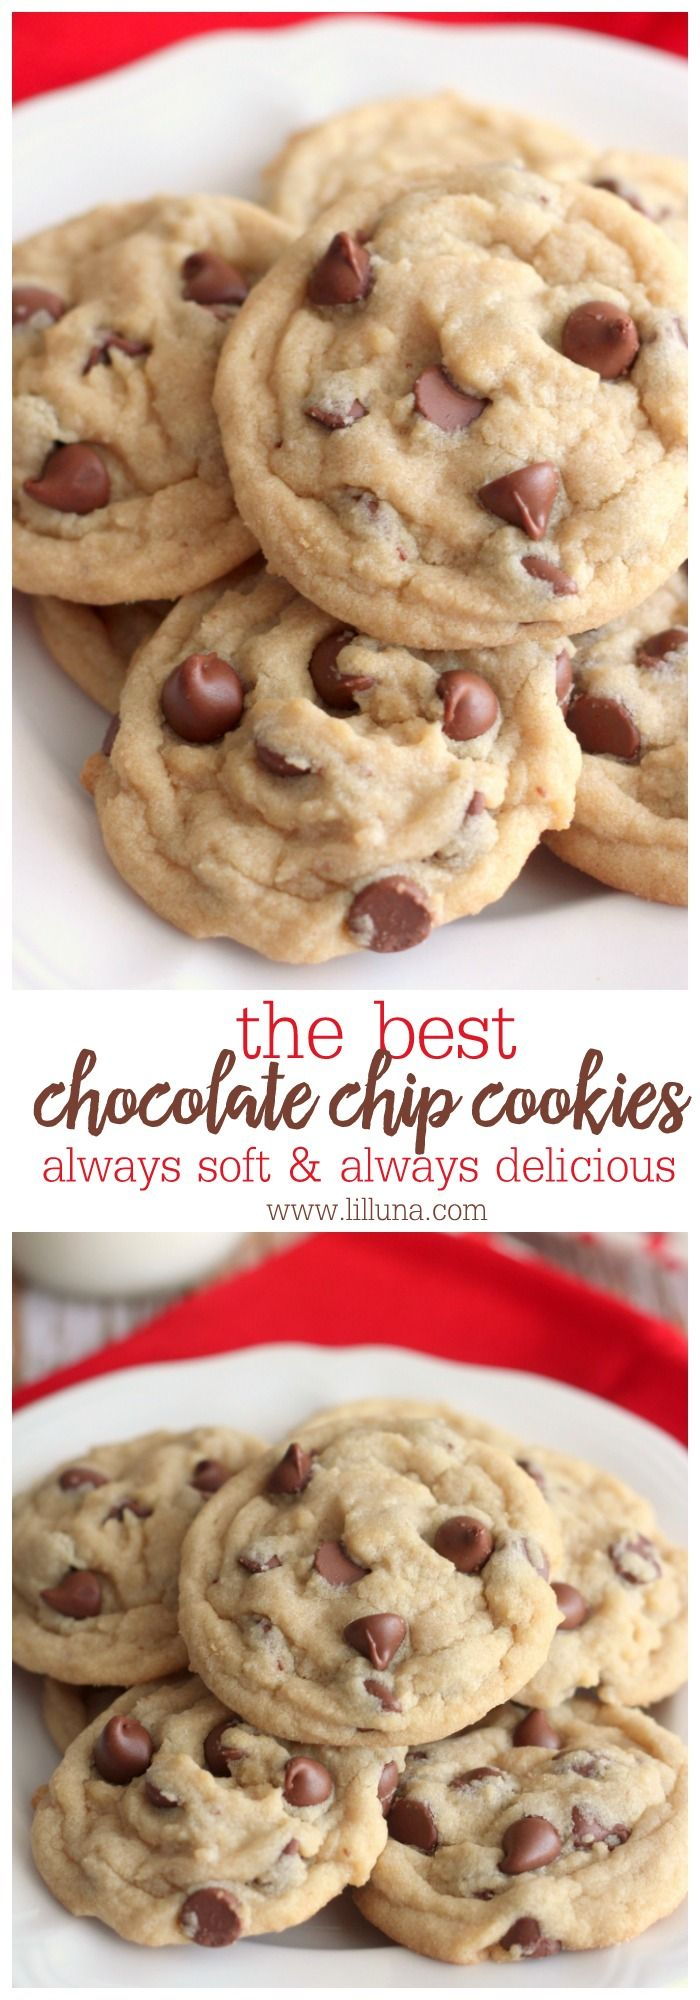 223 best images about Cookies on Pinterest